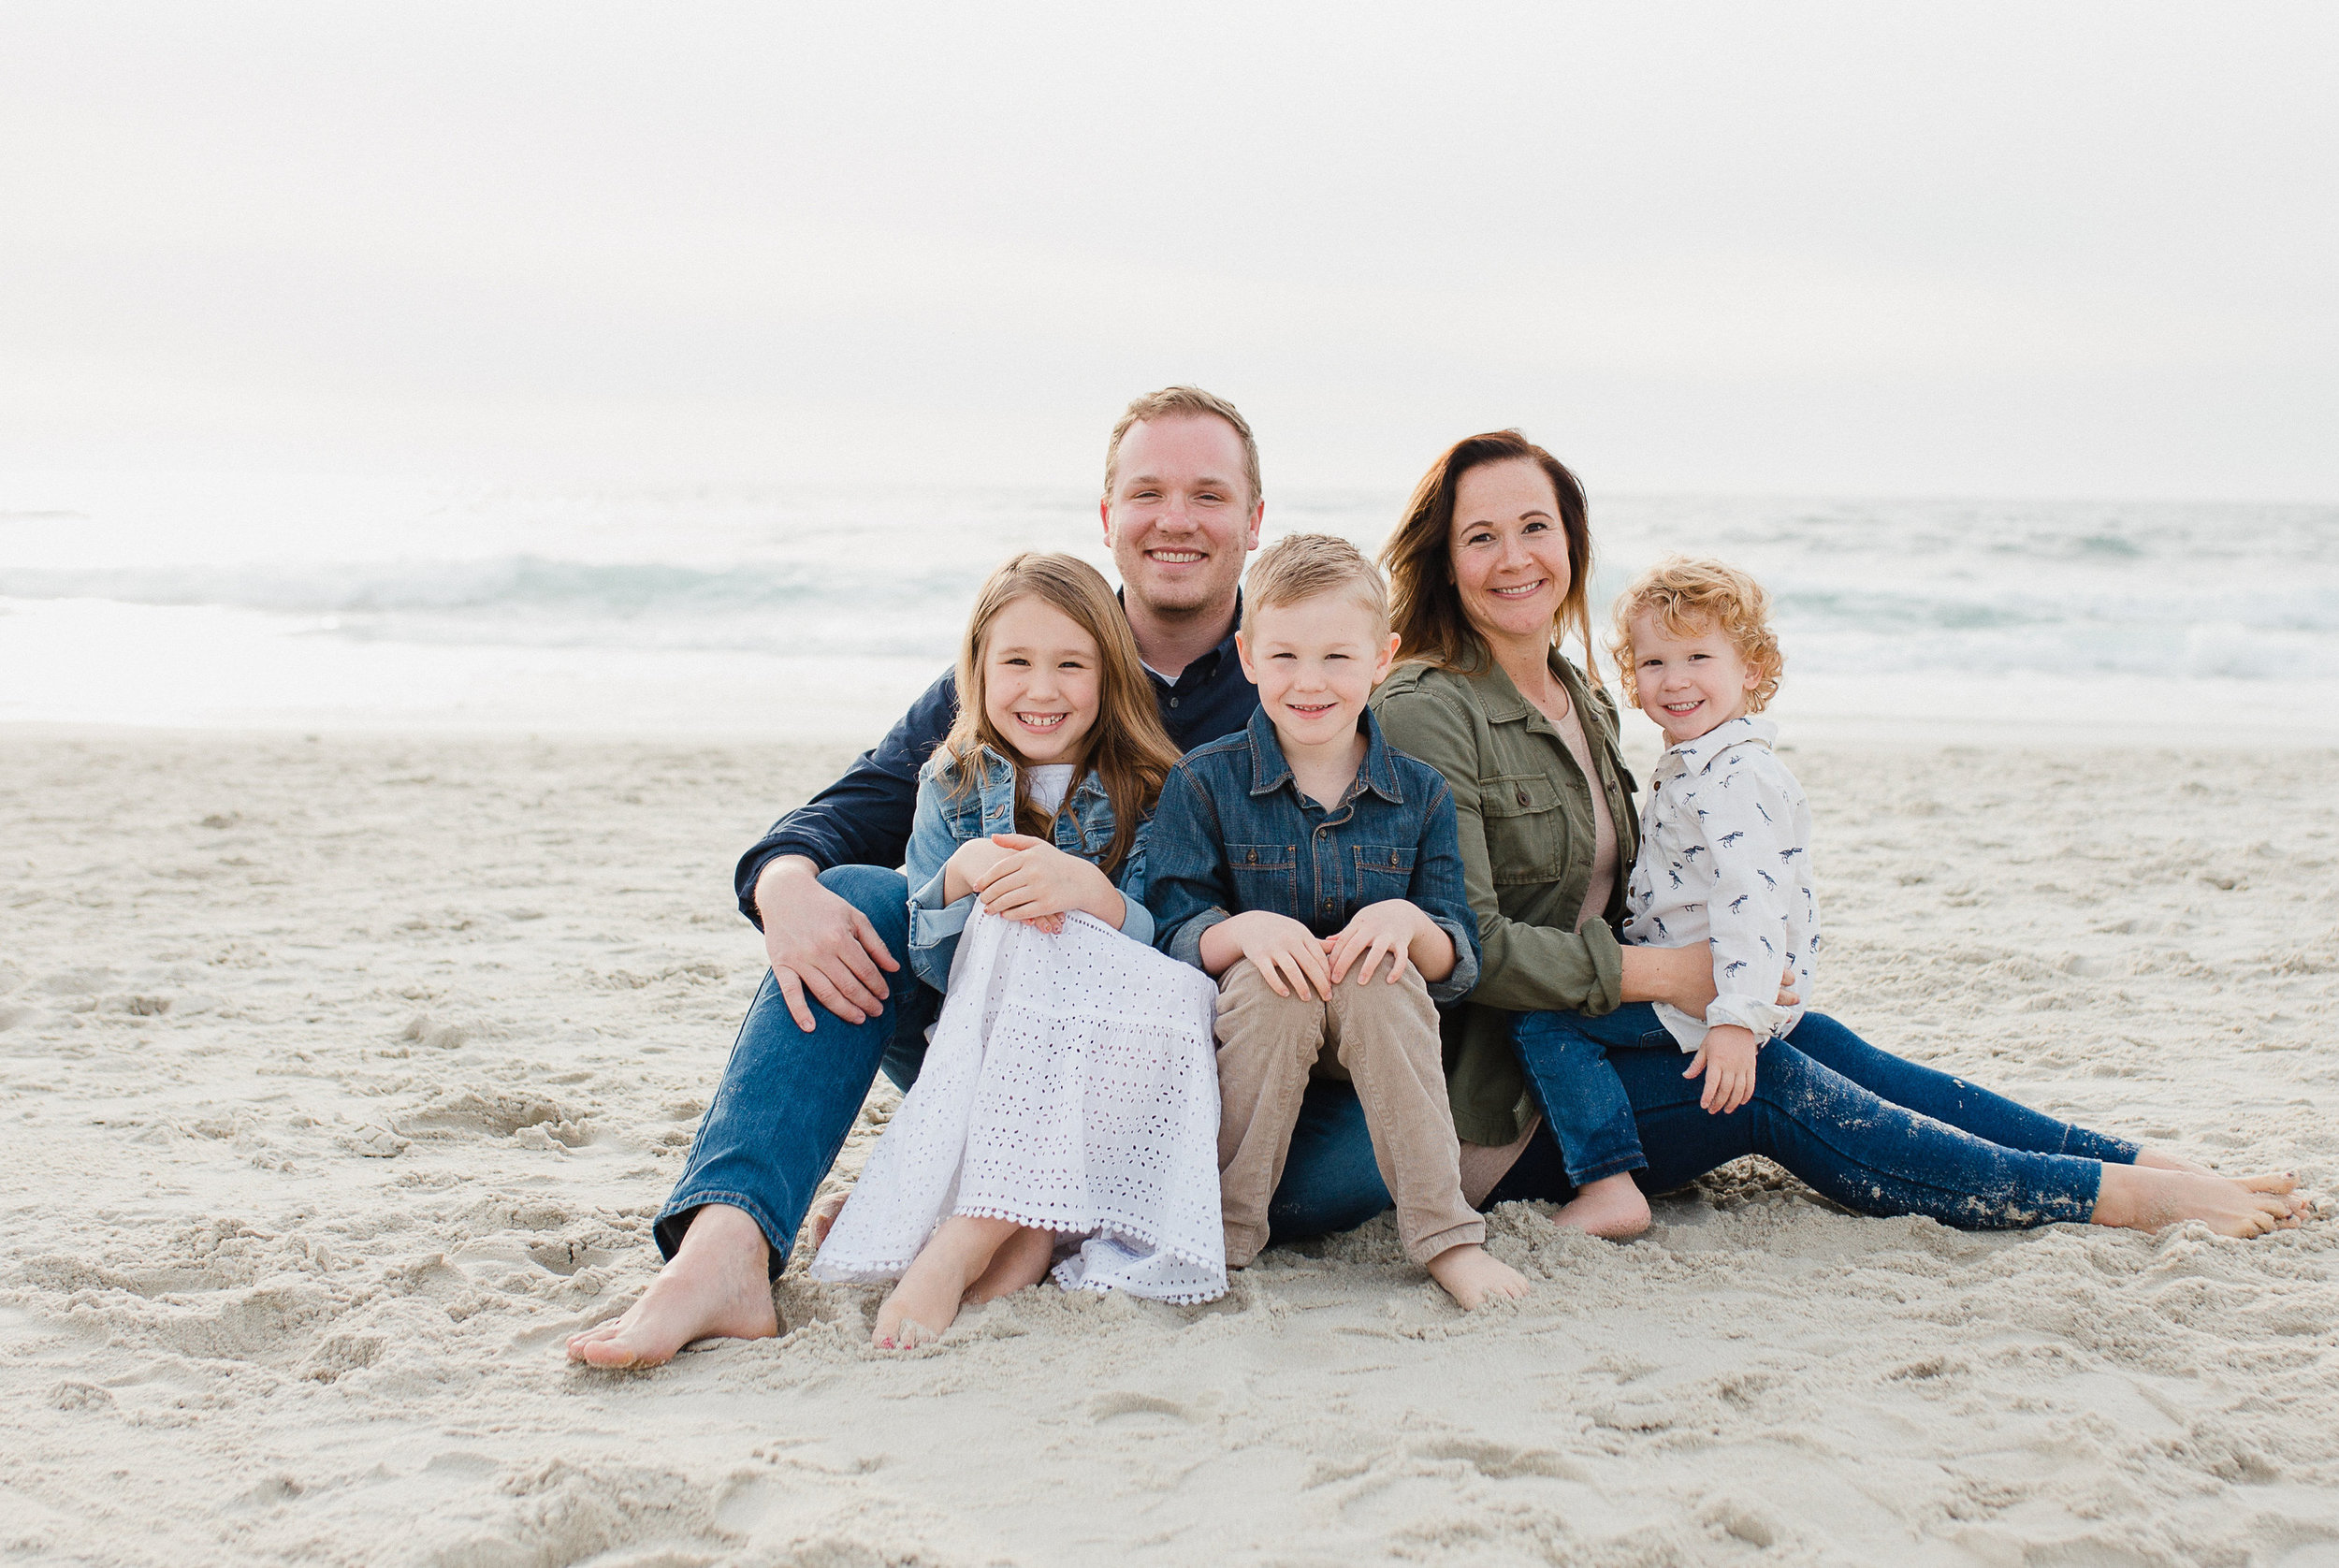 Meet Matt Hawkins - I live in Fort Wayne with my wonderful wife Lindsay and our three amazing children. We enjoy living in the '05 in a 100 year old tudor home and enjoy home projects, traveling, and trying new restaurants and coffee houses.We are passionate about making Fort Wayne a greater place to live and raise a family and are committed to the long term growth in Fort Wayne.